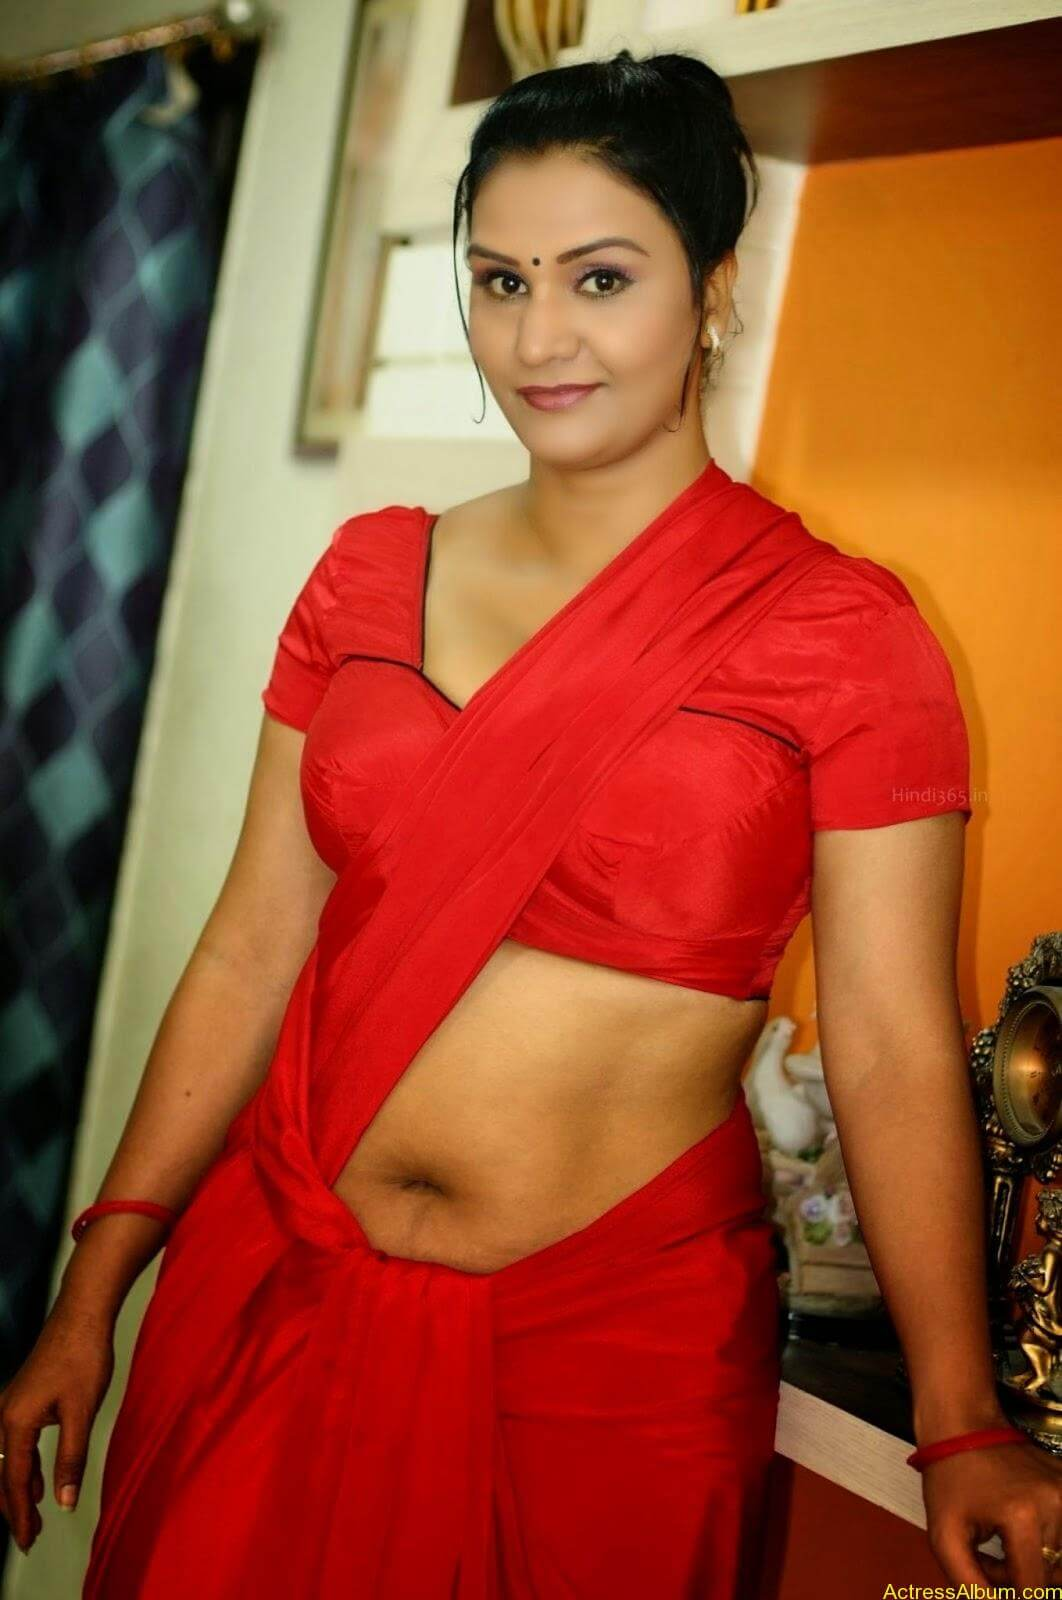 ACTRESS APOORVA VERY HOT IN RED SAREE PHOTO COLLECTION 20